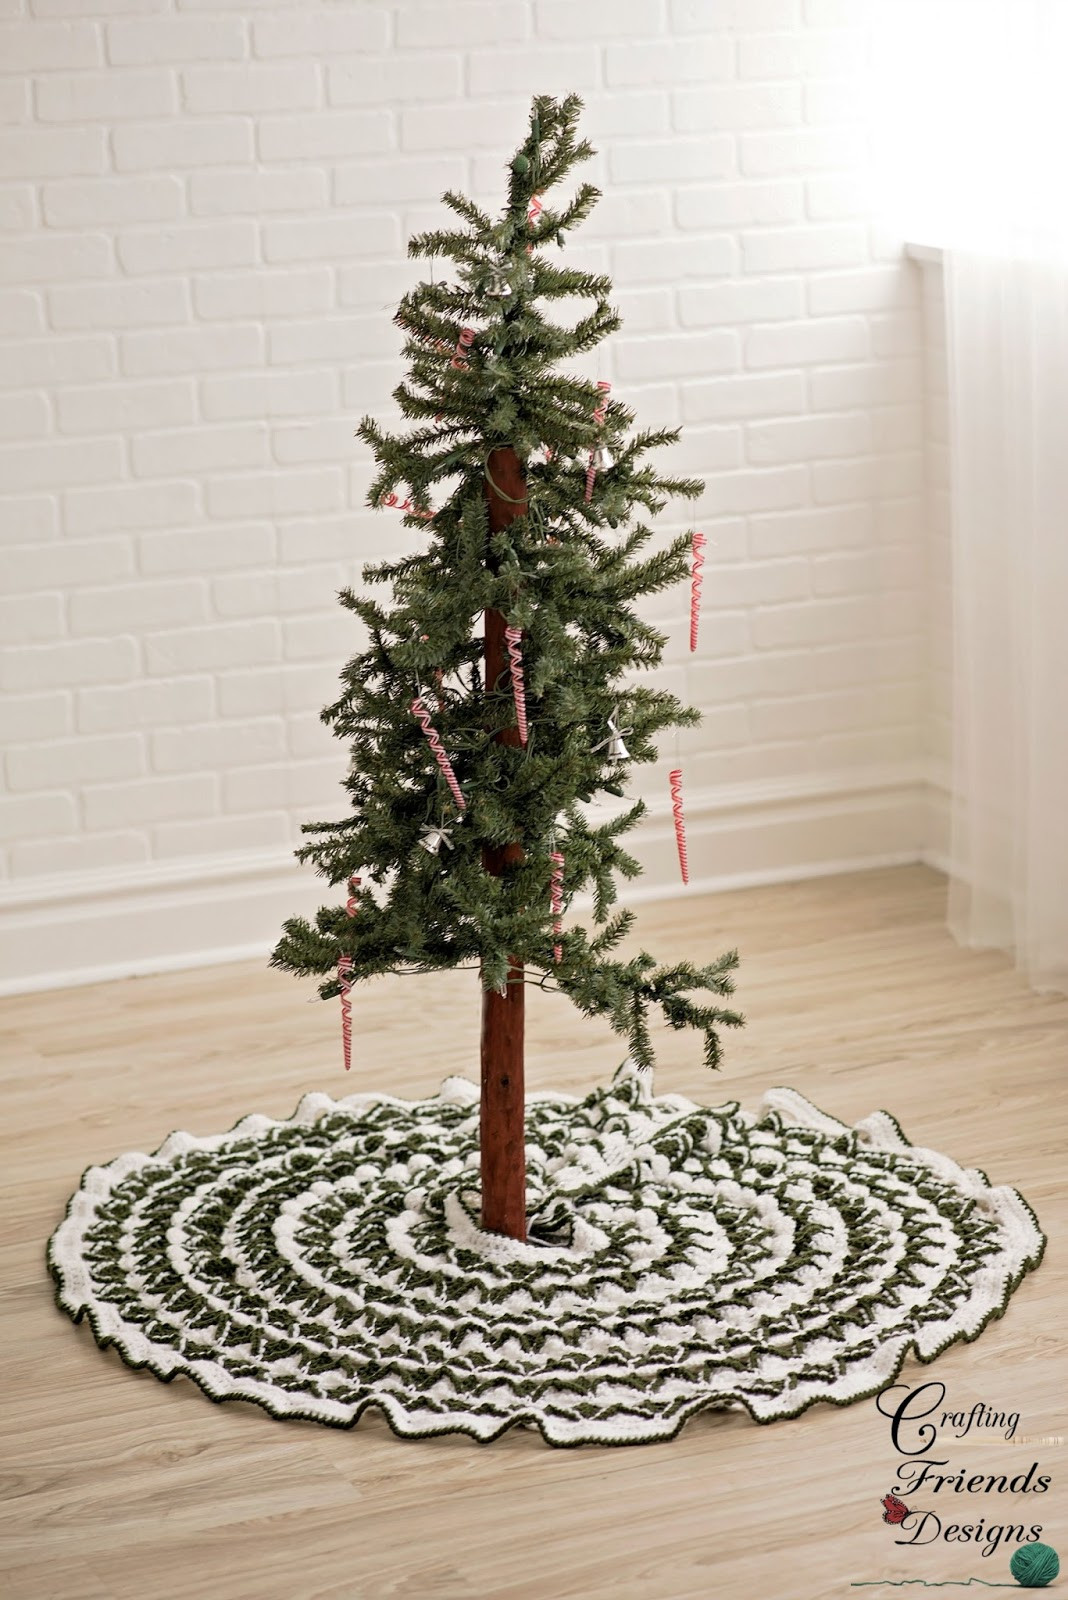 Christmas Tree Skirt Pattern Unique Crafting Friends Designs Christmas Pine Tree Skirt Free Of Top 49 Images Christmas Tree Skirt Pattern